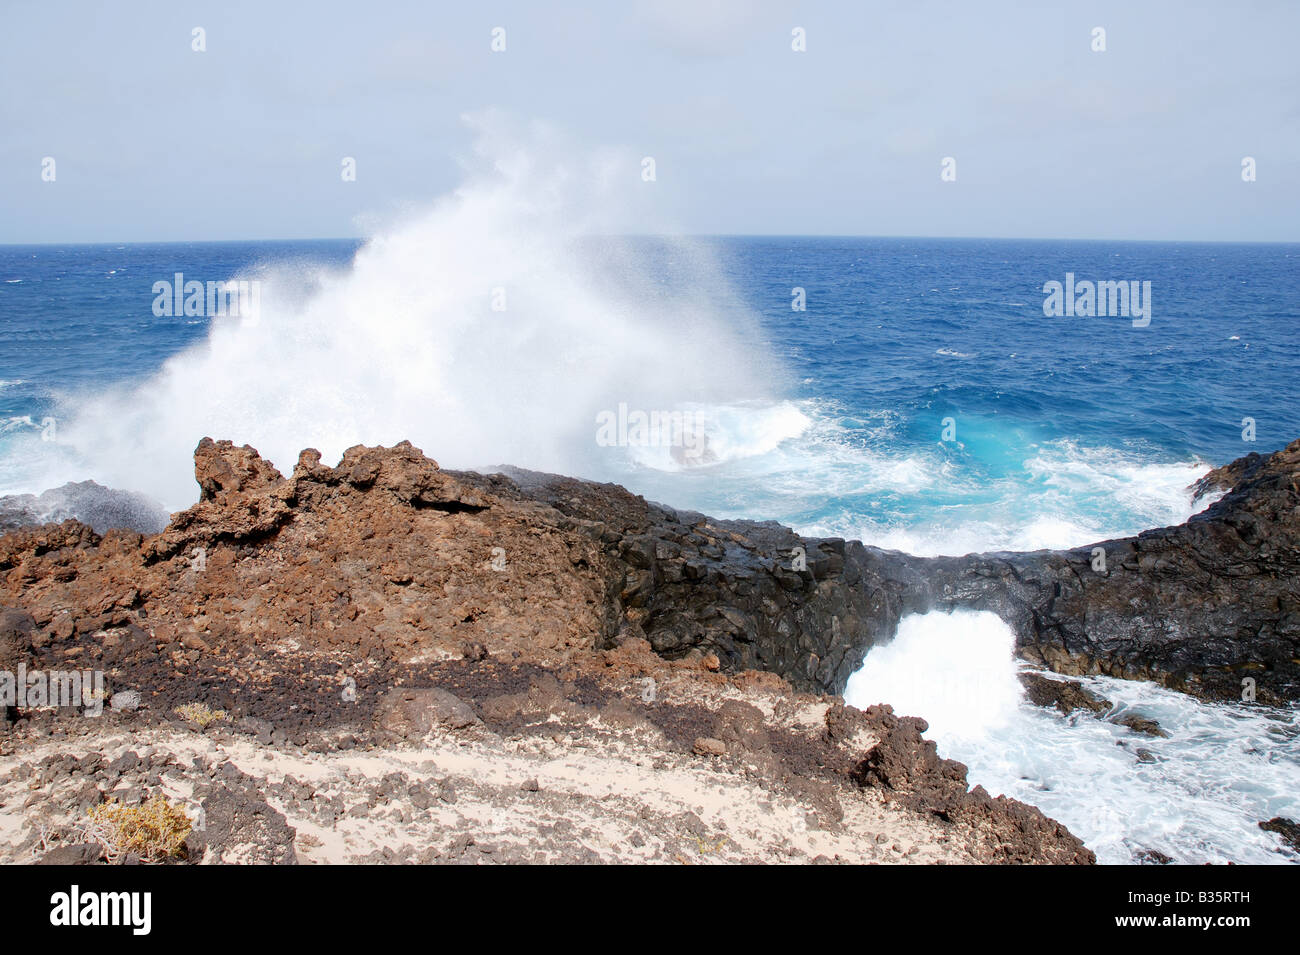 Waves breaking against volcanic rocks. Lanzarote island. Canary Islands. Spain. Stock Photo